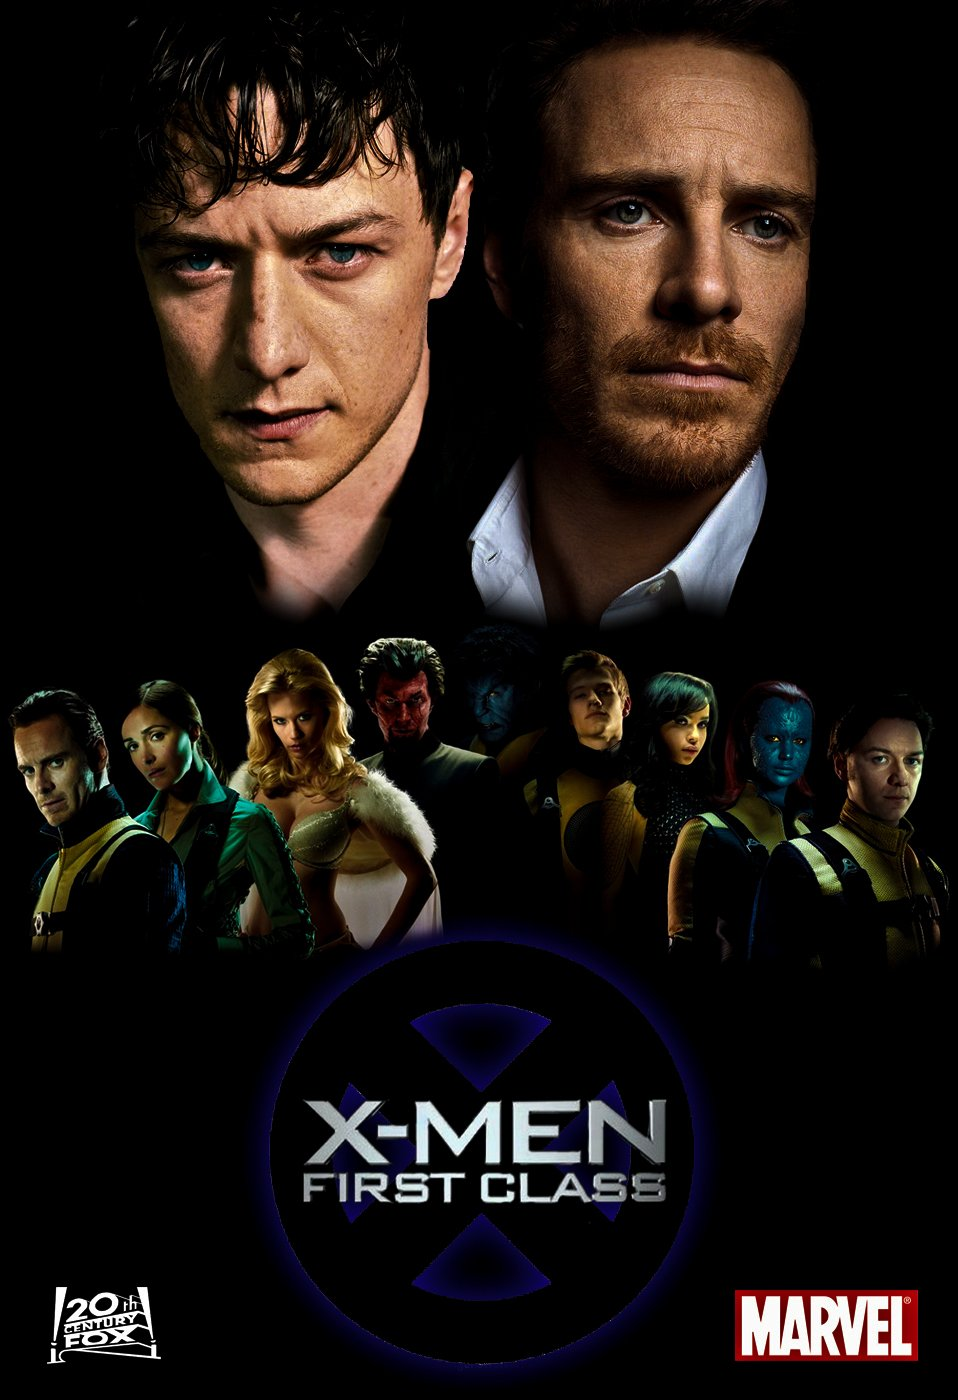 Posted by SciFiComicGuy at 4 57 PMX Men First Class 2 Poster